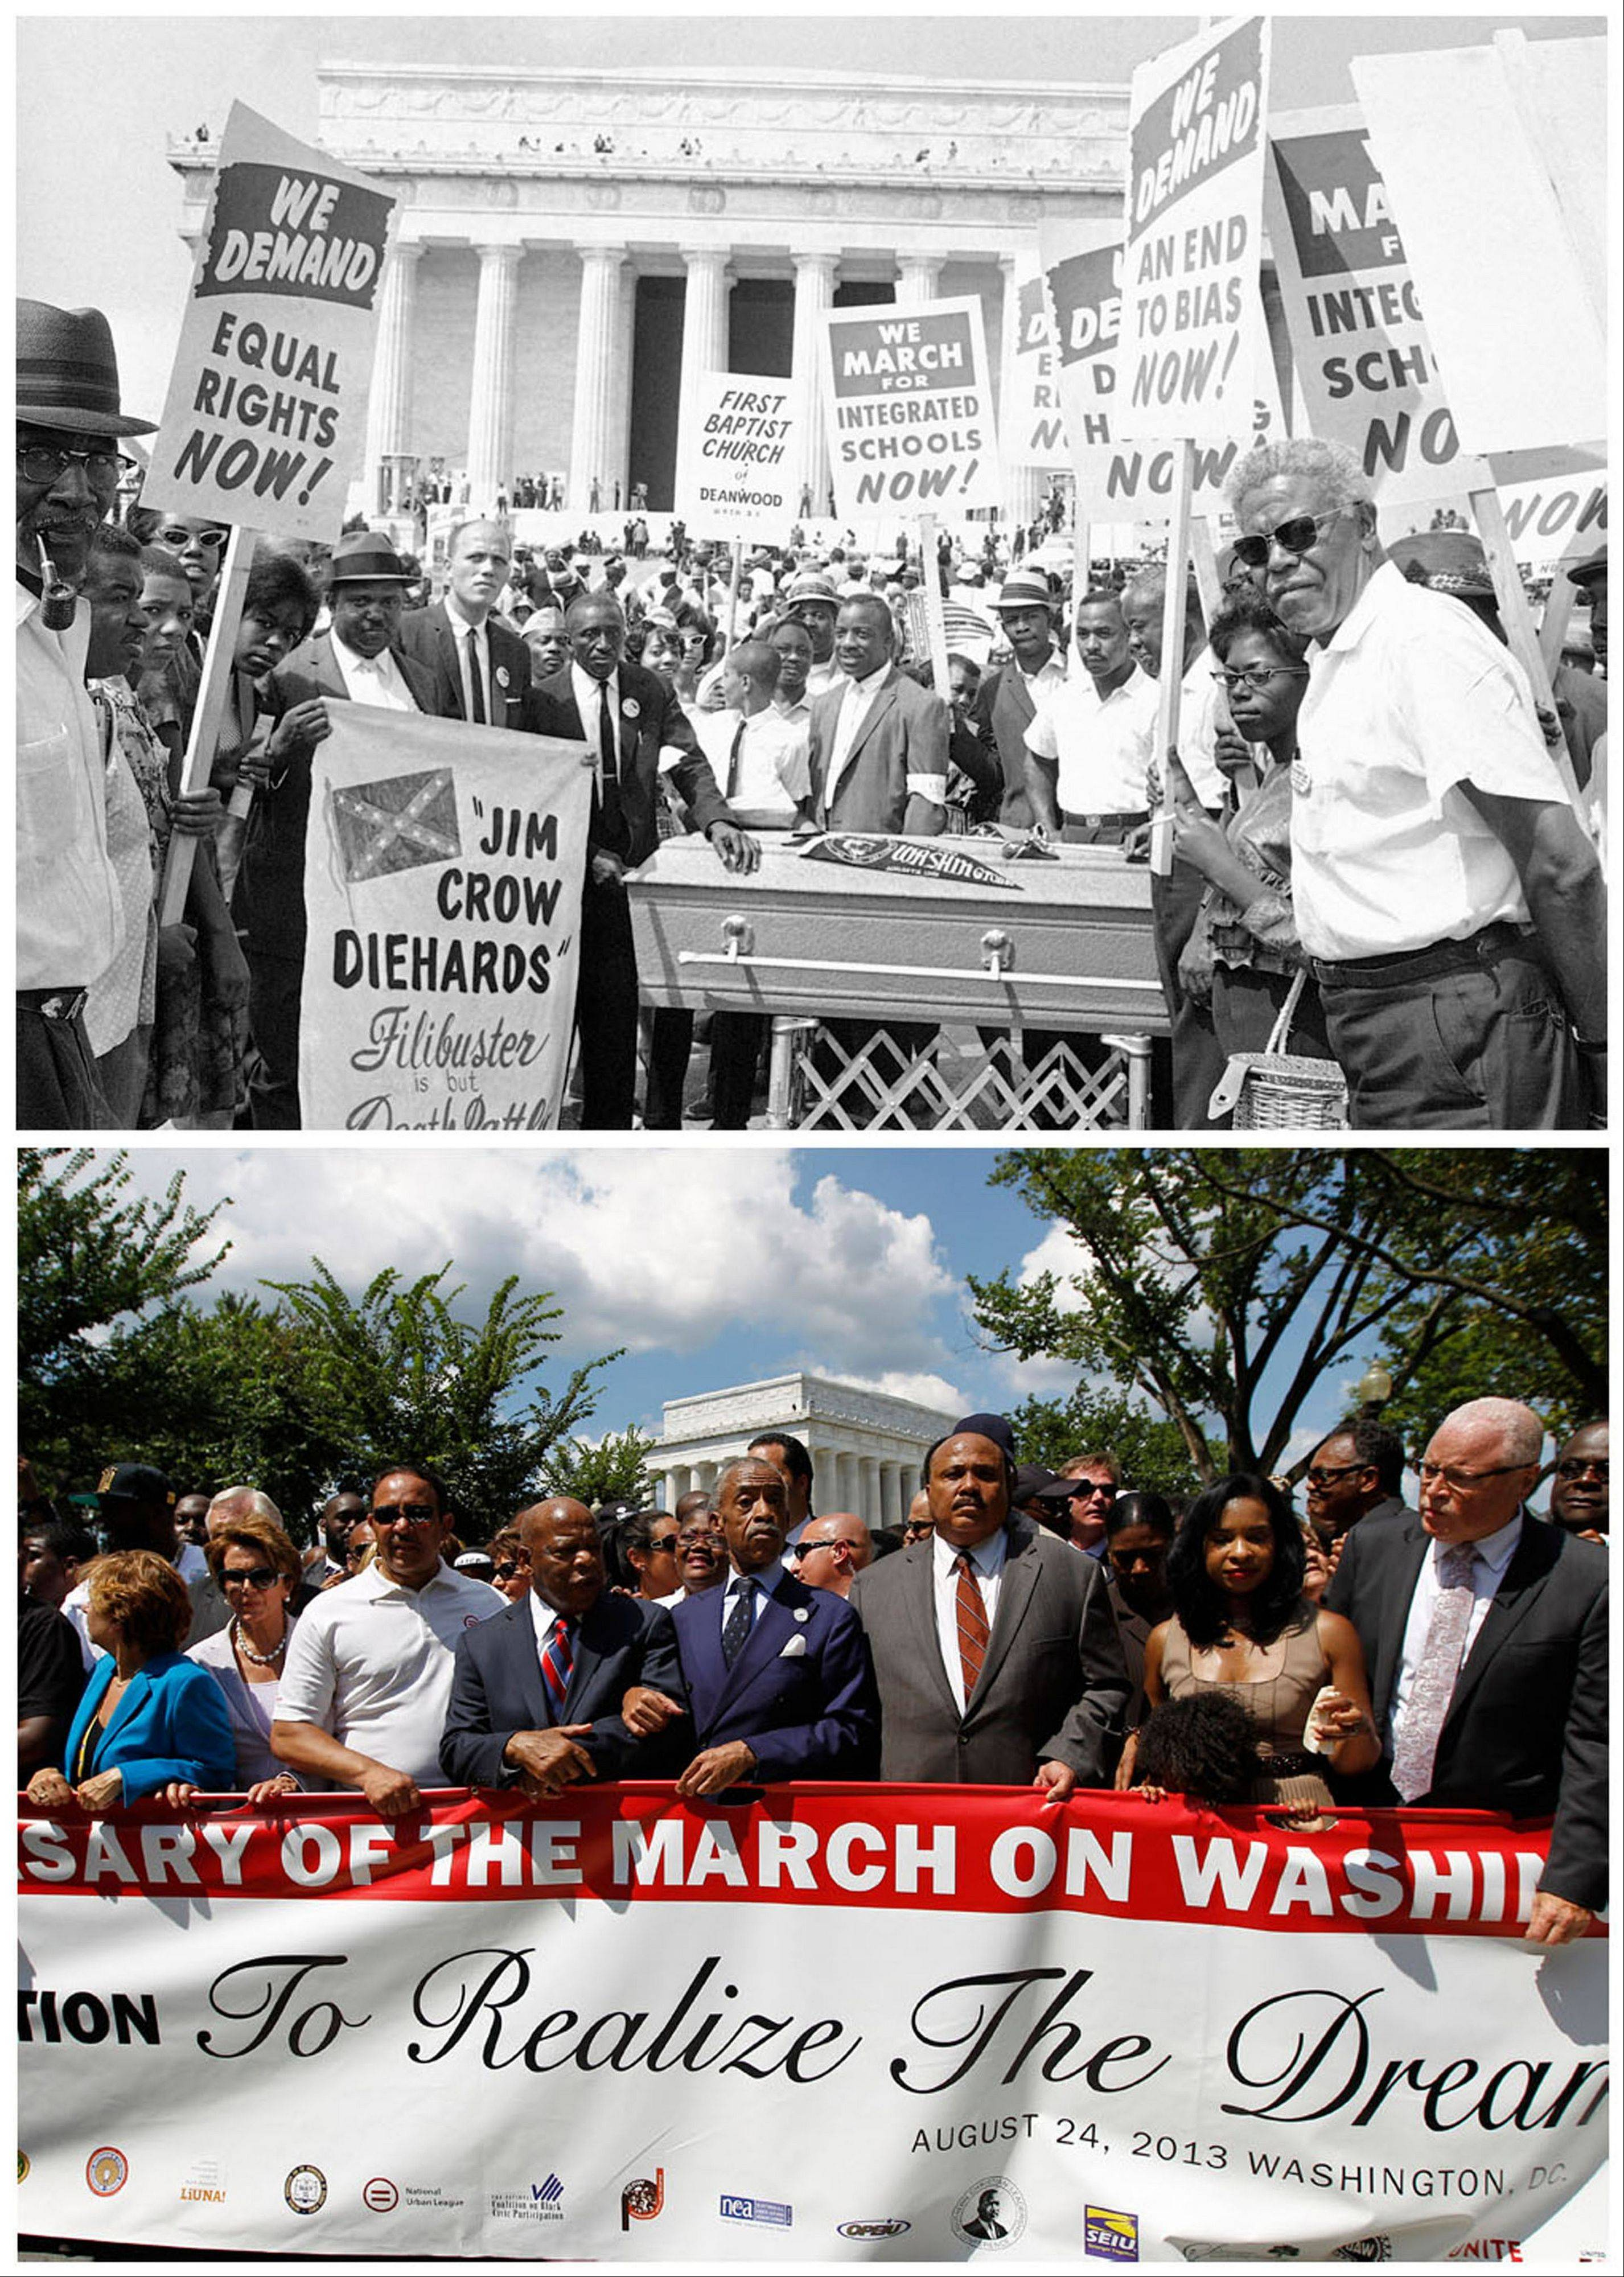 At top, a group of demonstrators pose for a photo at the Lincoln Memorial in during the Aug. 28, 1963, March on Washington; and at bottom, the Rev. Al Sharpton, center, arm-in-arm with Congressman John Lewis, lining up with Martin Luther King III, third from right, Andrea King, and Rep. Nancy Pelosi, second from left, after the rally Saturday at the Lincoln Memorial, commemorating the 50th anniversary of the 1963 march.